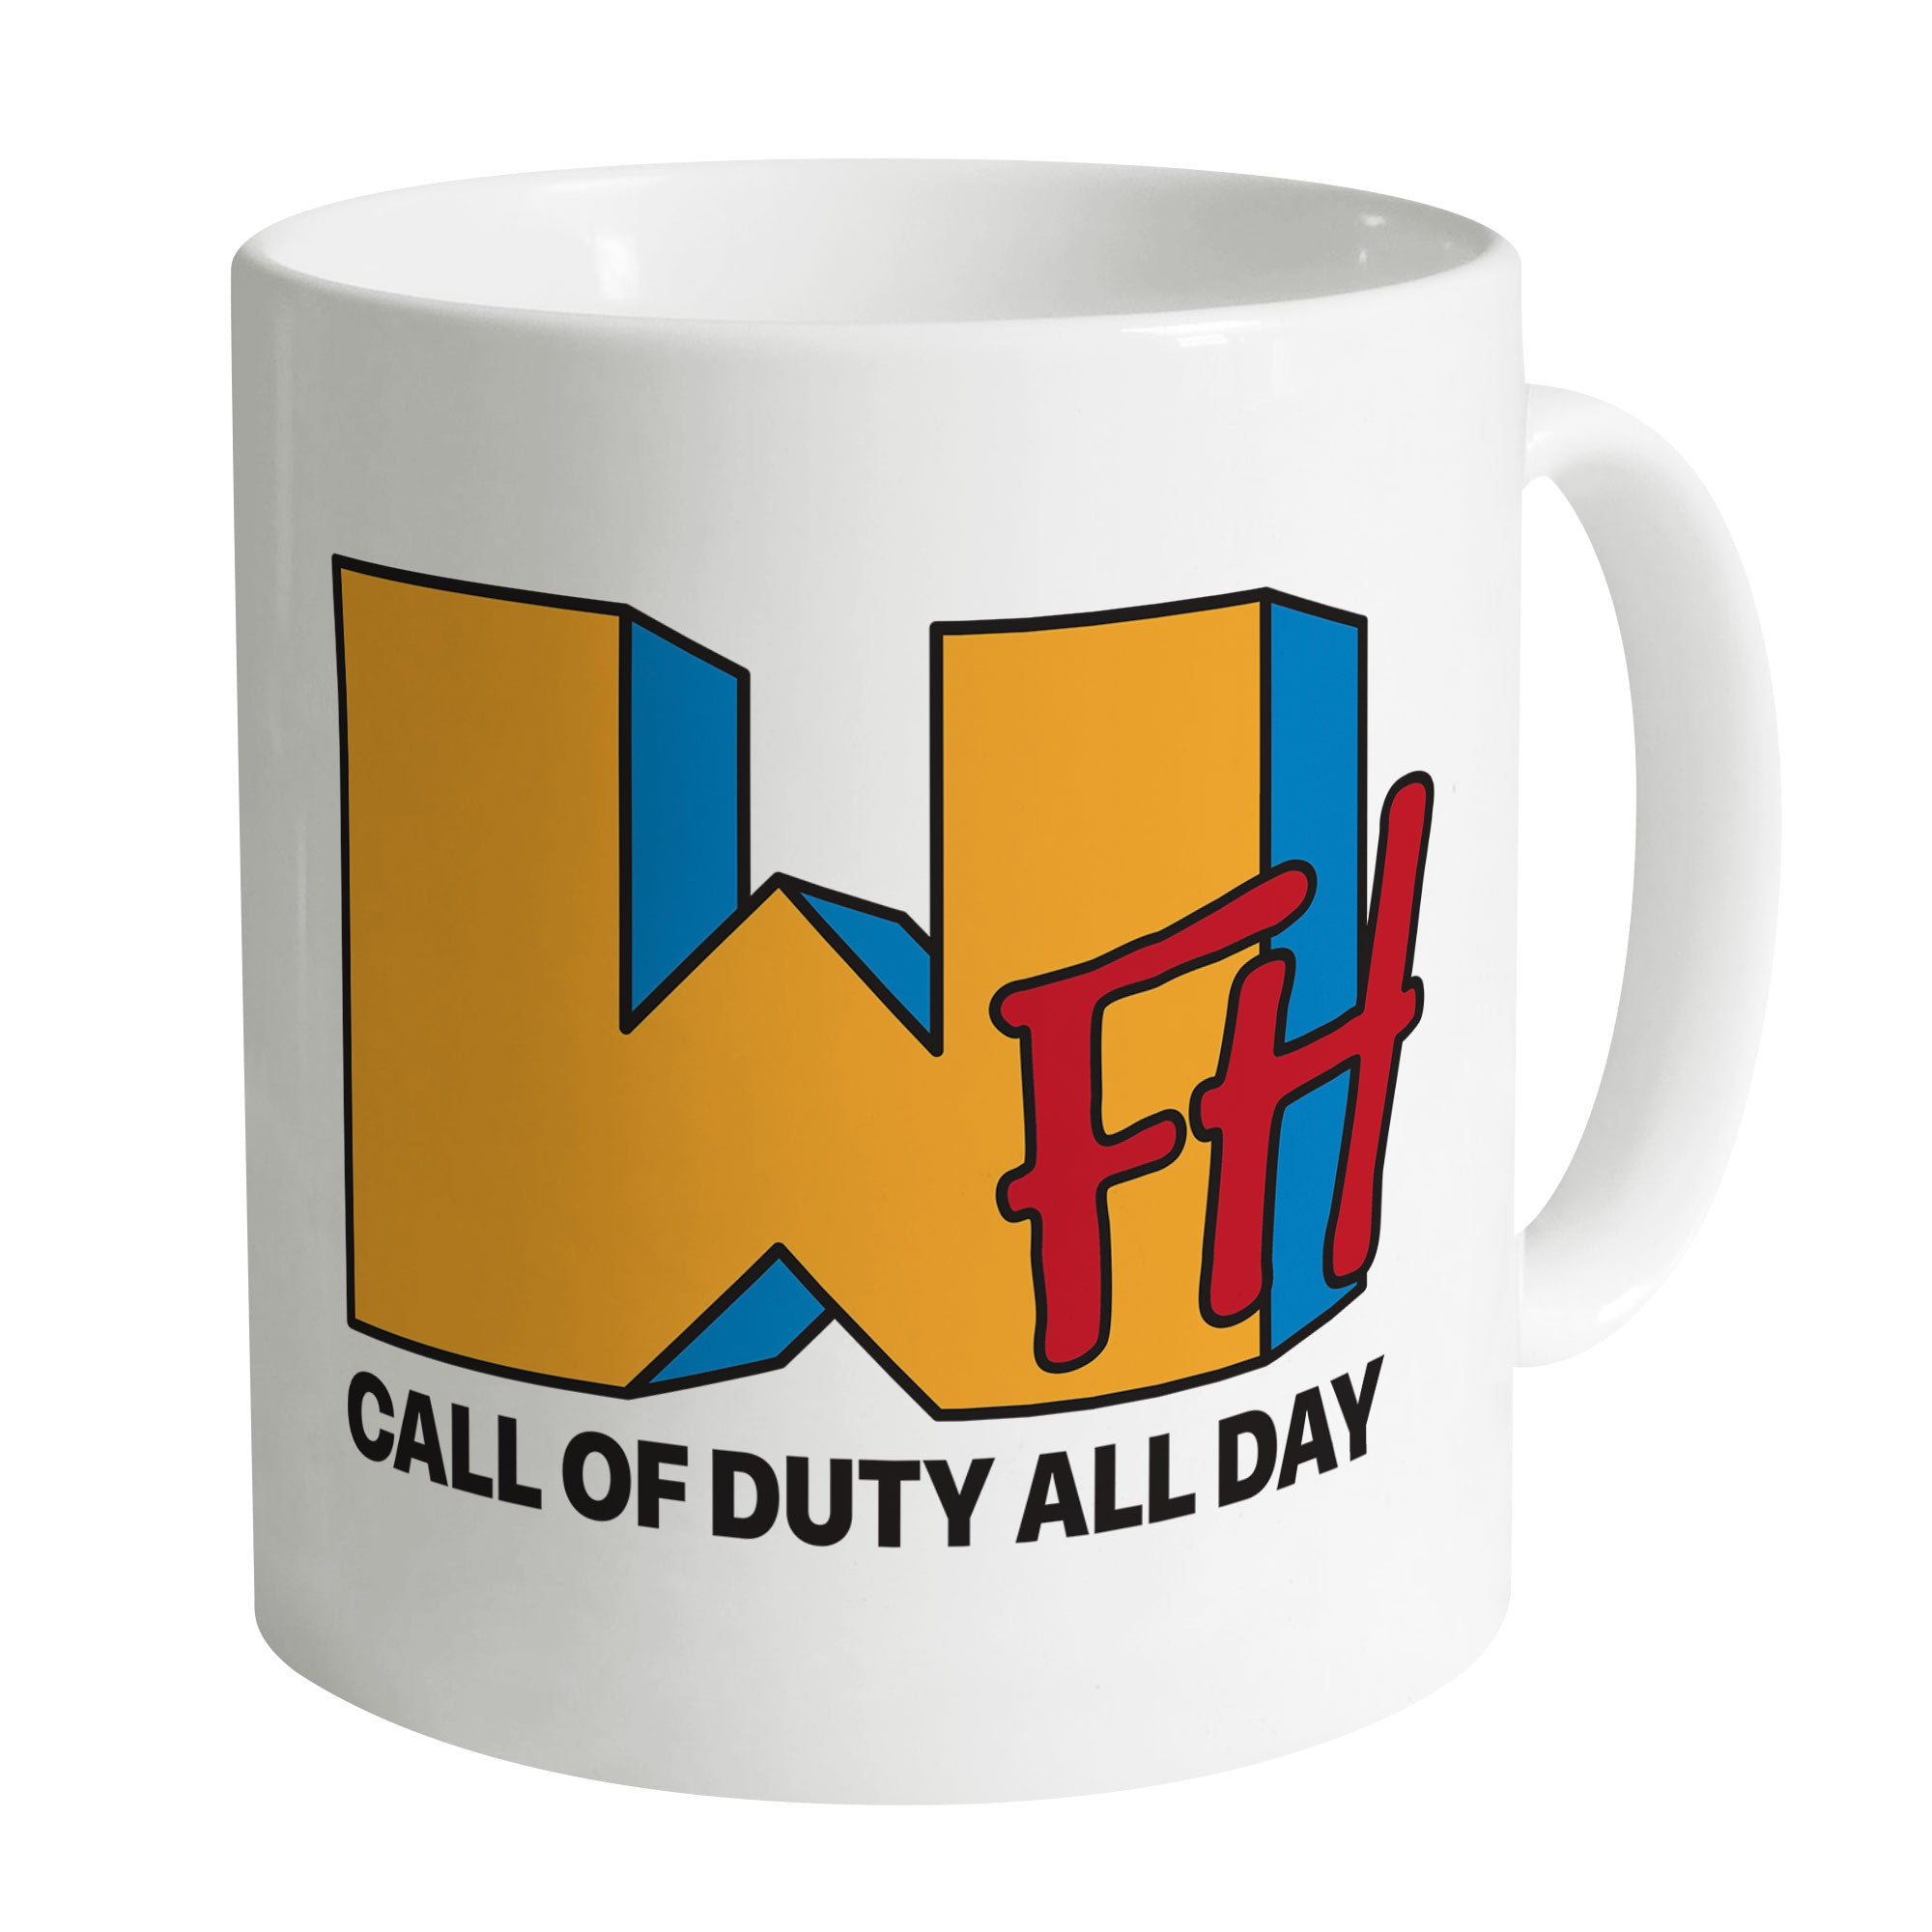 Cheap Work From Home COD Mug Clothing & Accessories